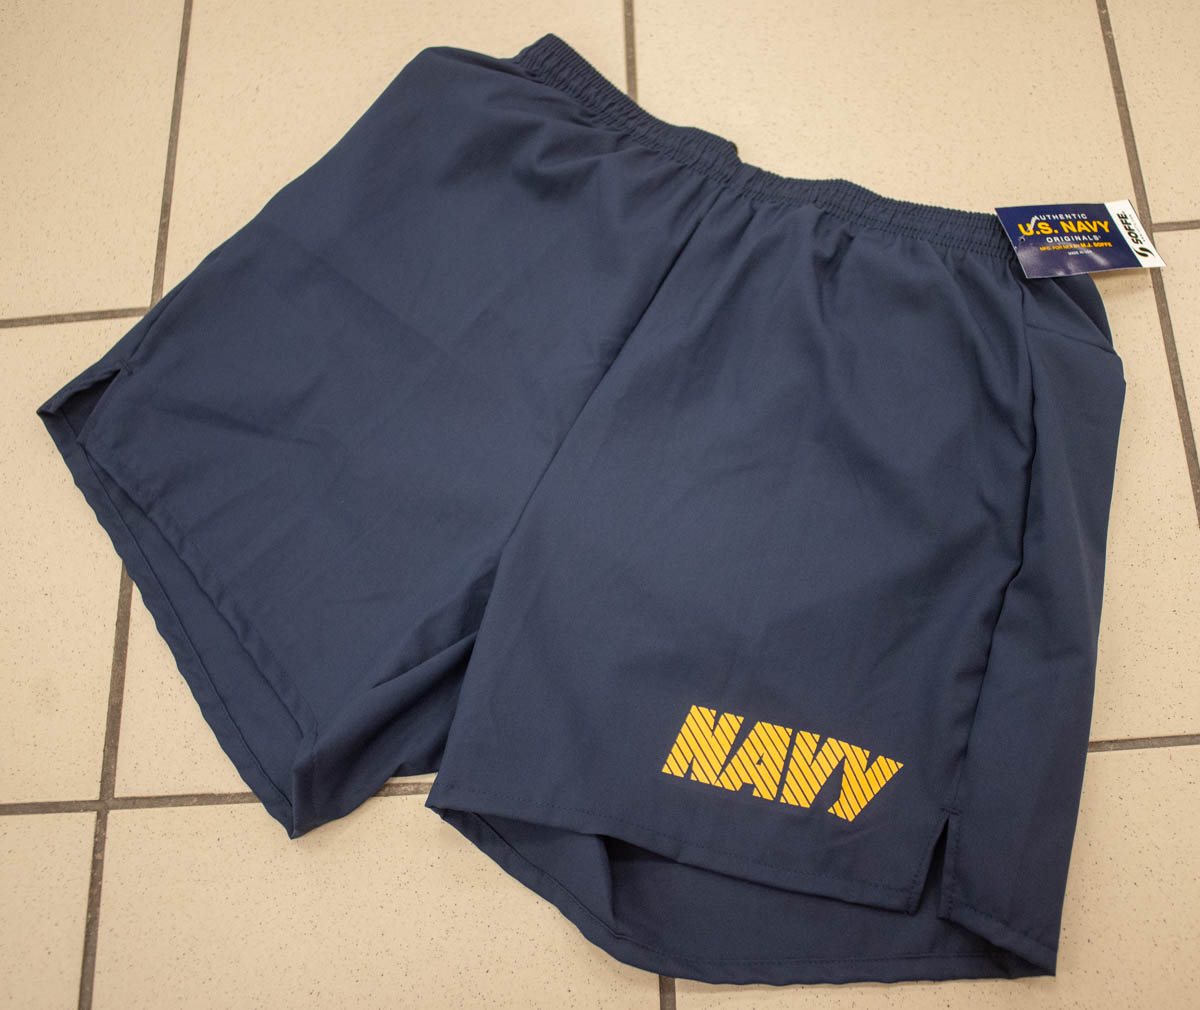 The Navy's new physical training uniform shorts have a five-inch inseam and a zippered pocket. (Mark D. Faram/Staff)